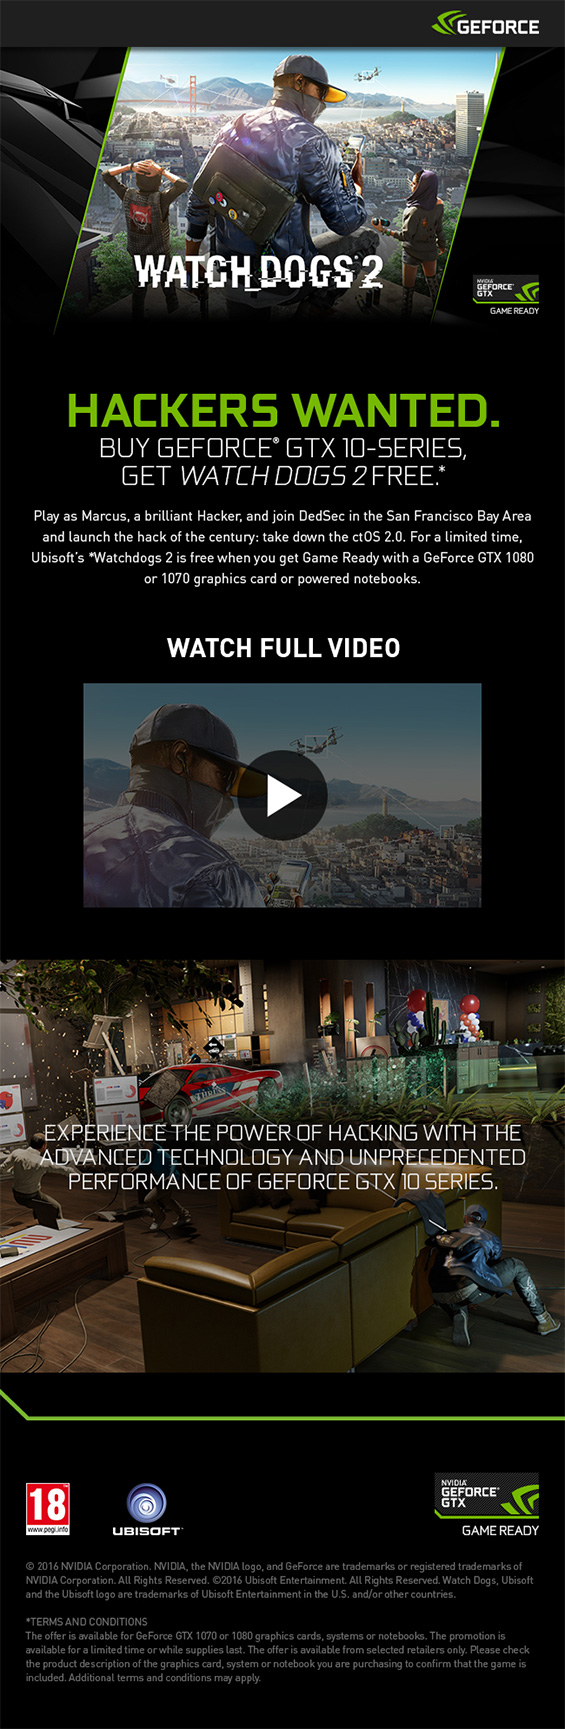 The Nvidia Watch Dogs 2 info banner